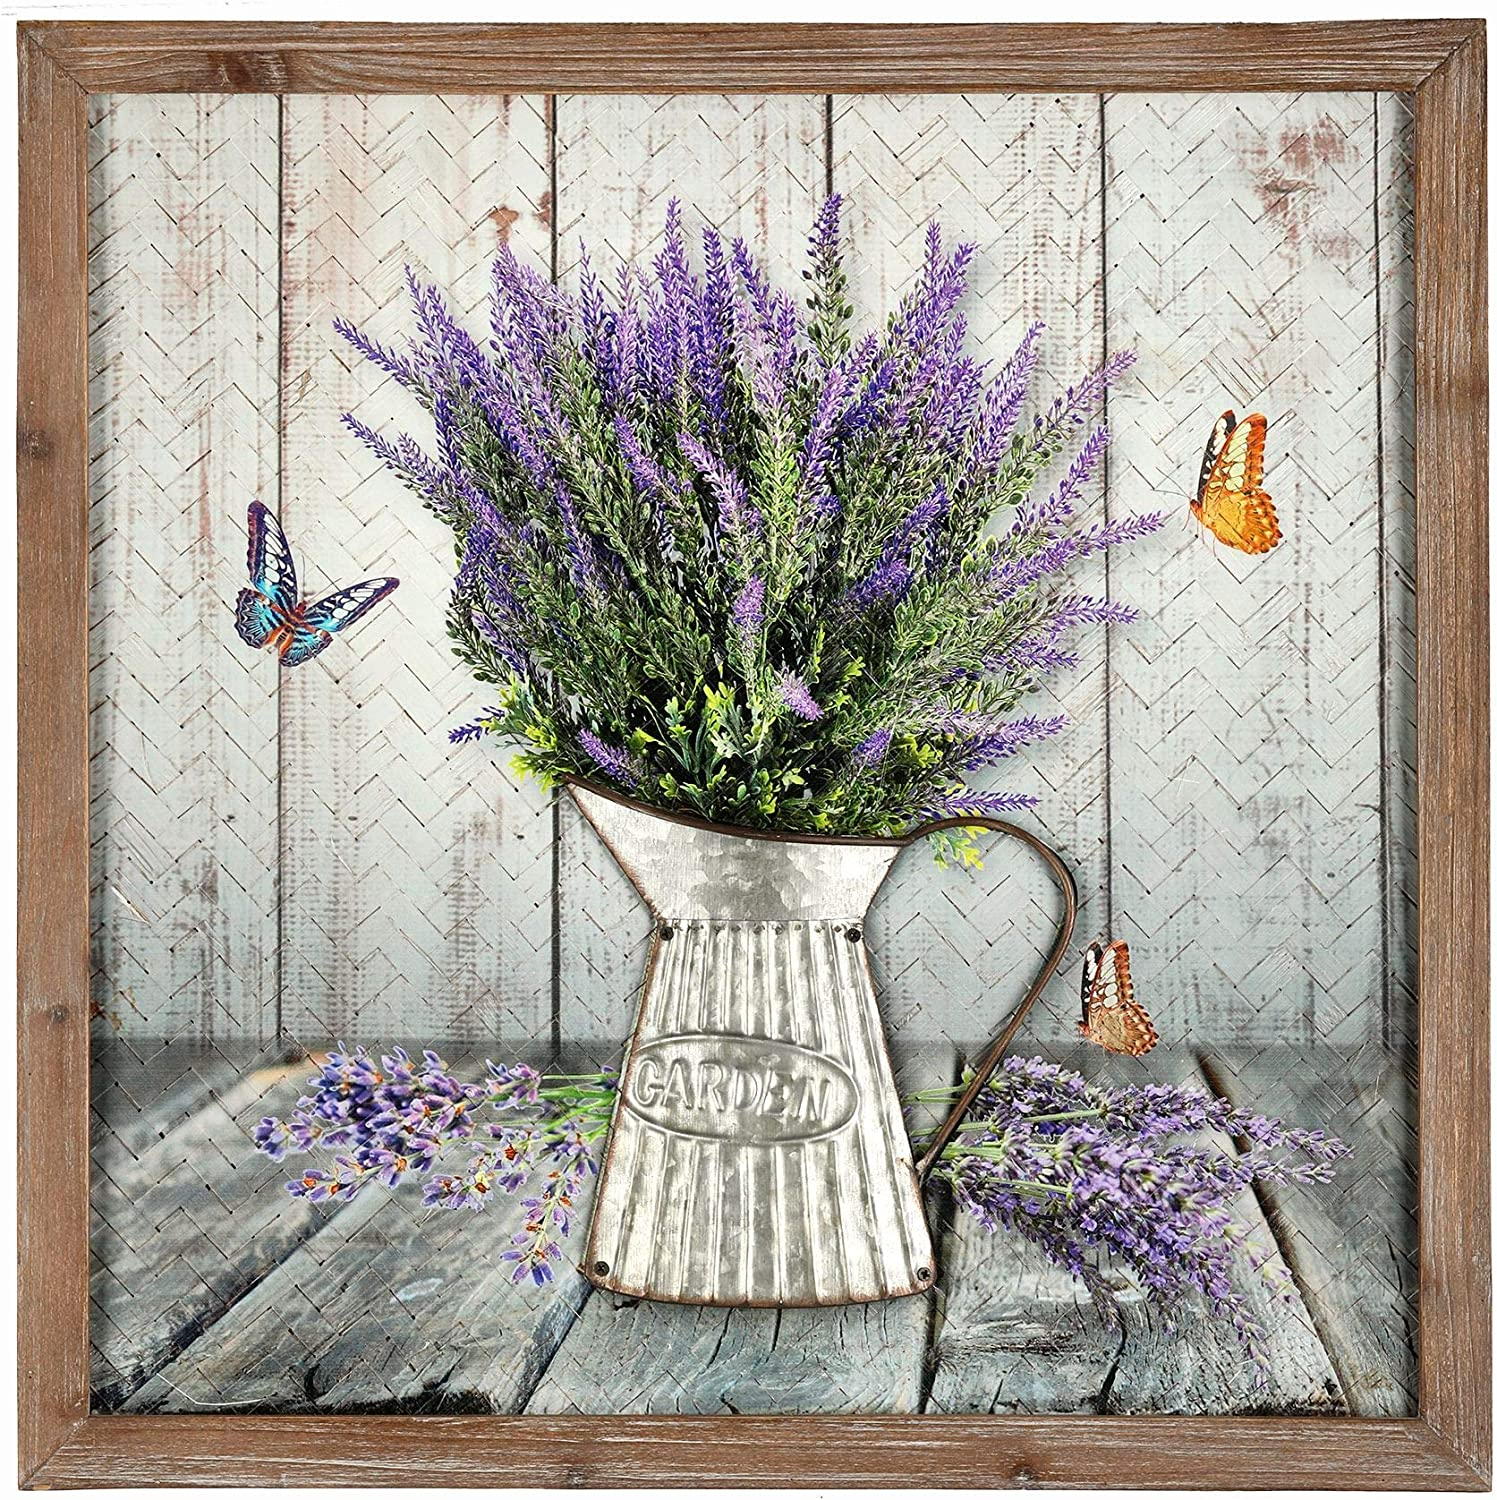 Amazon Com Regency International Lavender Art Print Painting On Woven Bamboo Canvas Wooden Frame 19 5 X 19 5 Inch Posters Prints